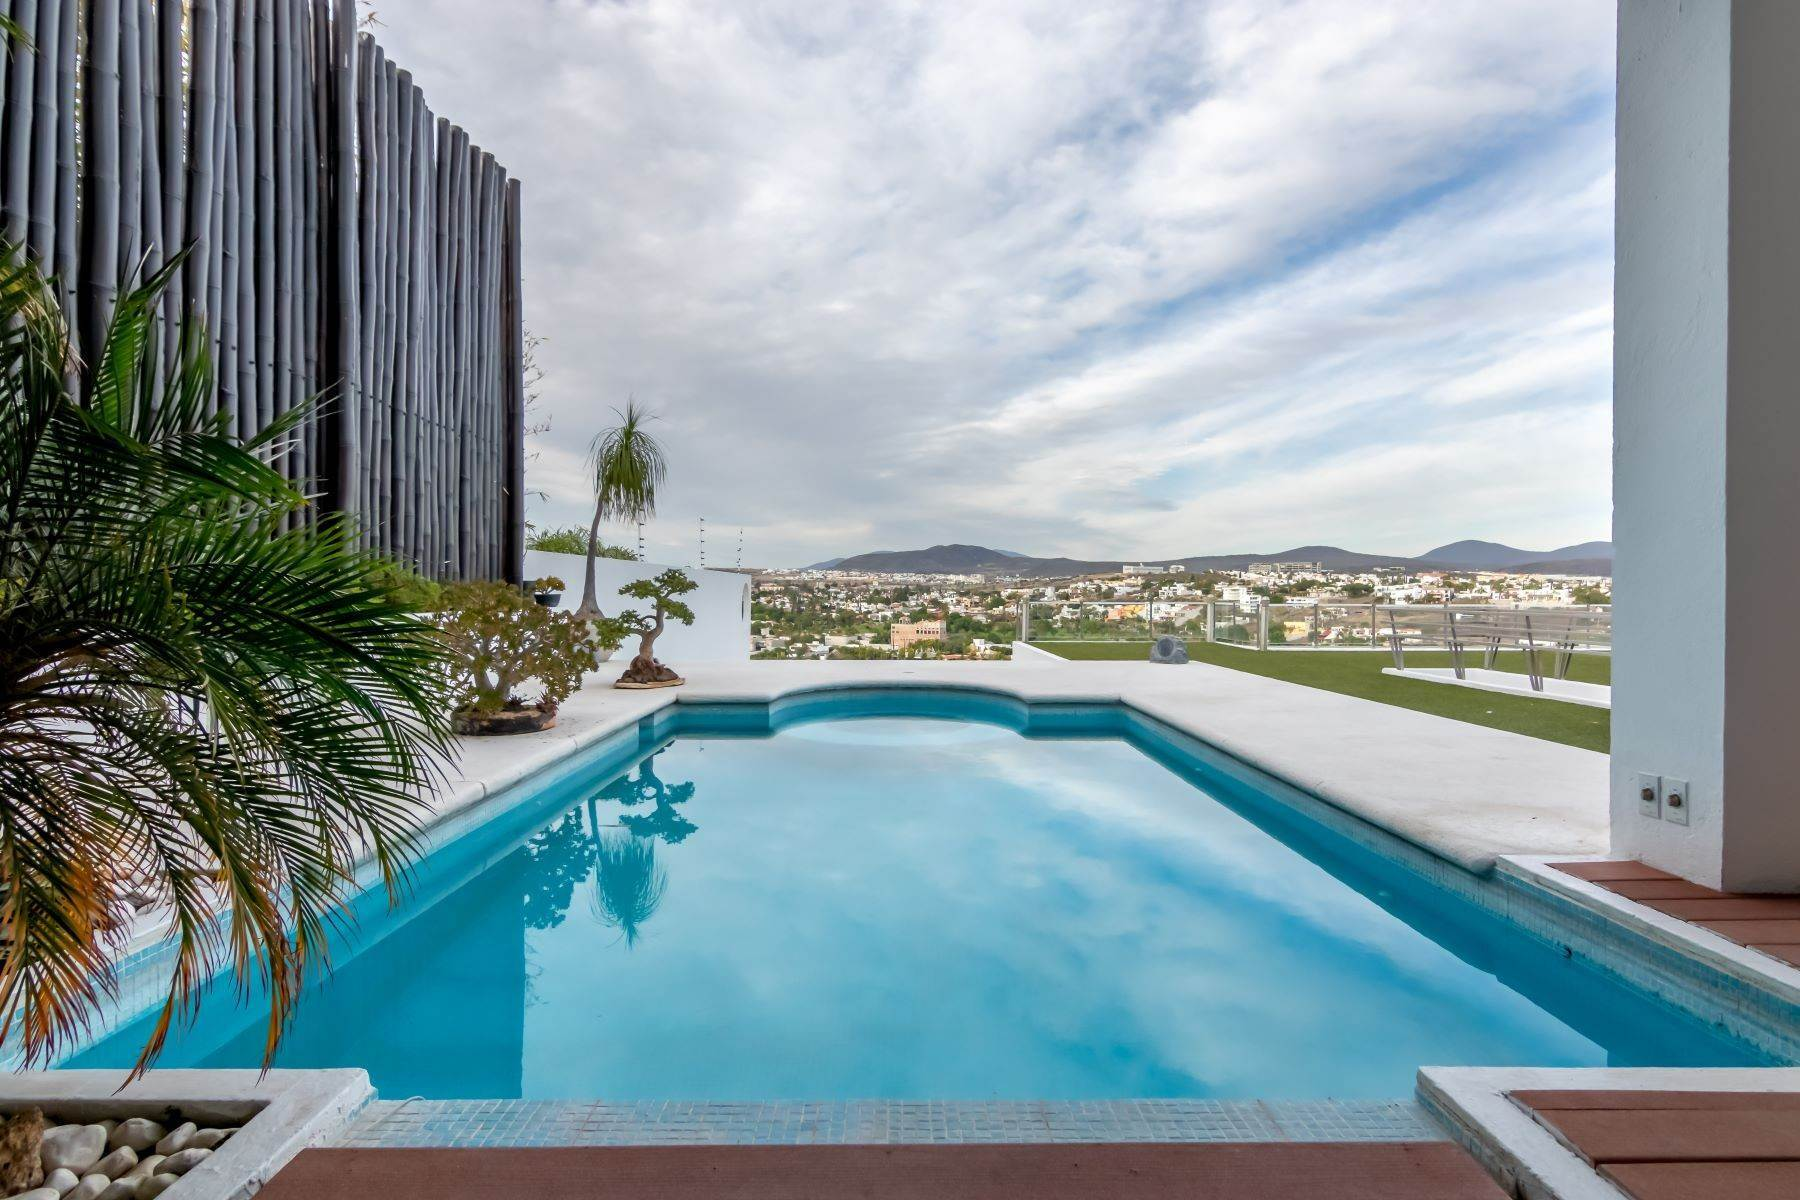 Single Family Homes for Sale at Casa de los Pelicanos Queretaro, Queretaro 76230 Mexico